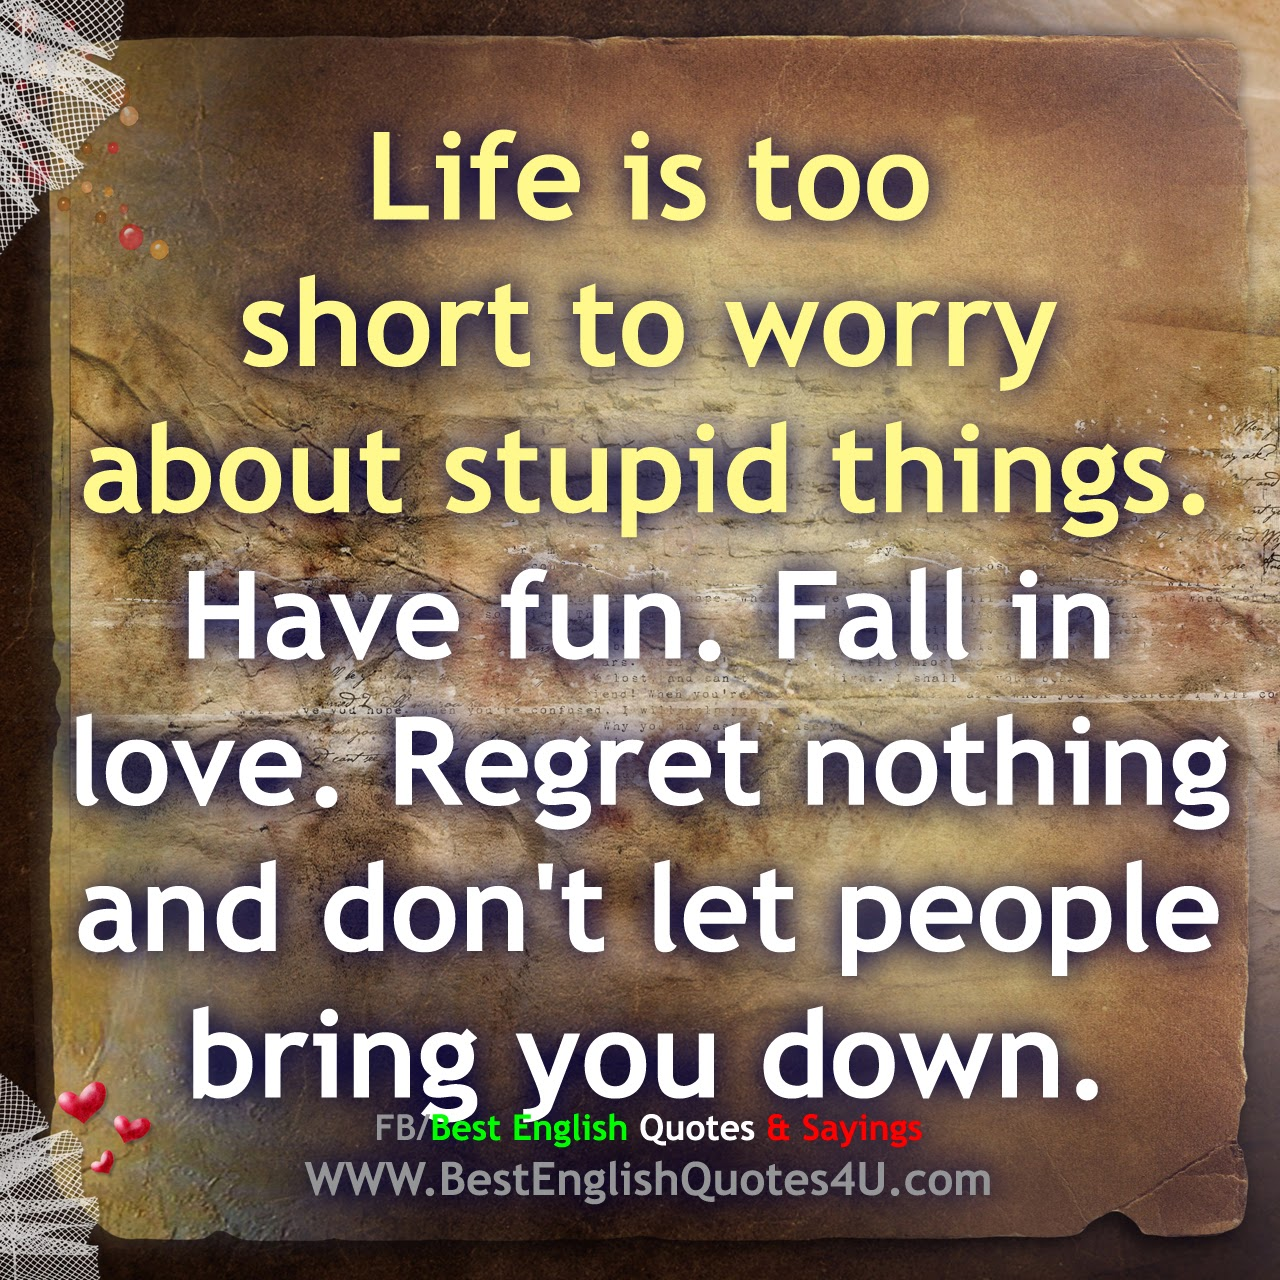 Quotes About Saying Stupid Things: Life Is Too Short To Worry About Stupid Things...